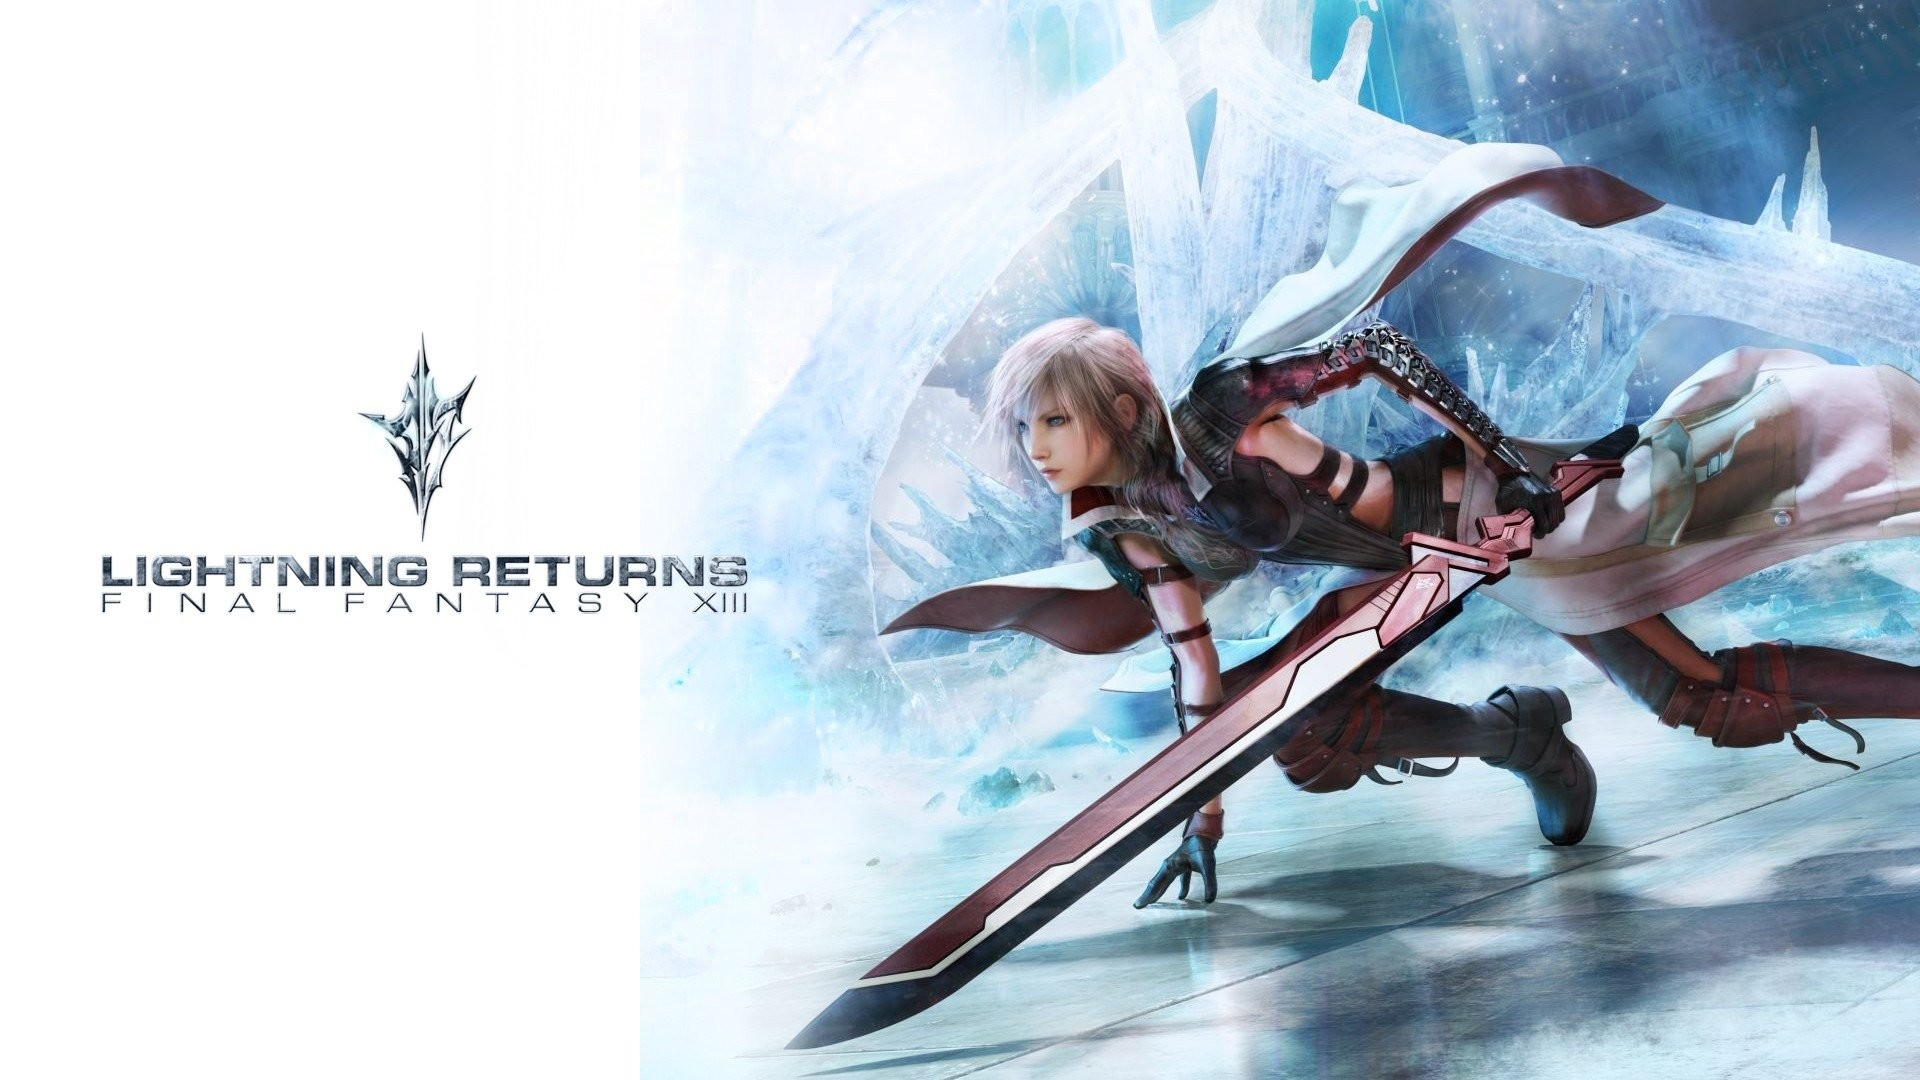 Hd Tropical Island Beach Paradise Wallpapers And Backgrounds: Final Fantasy XIII Wallpaper (70+ Images